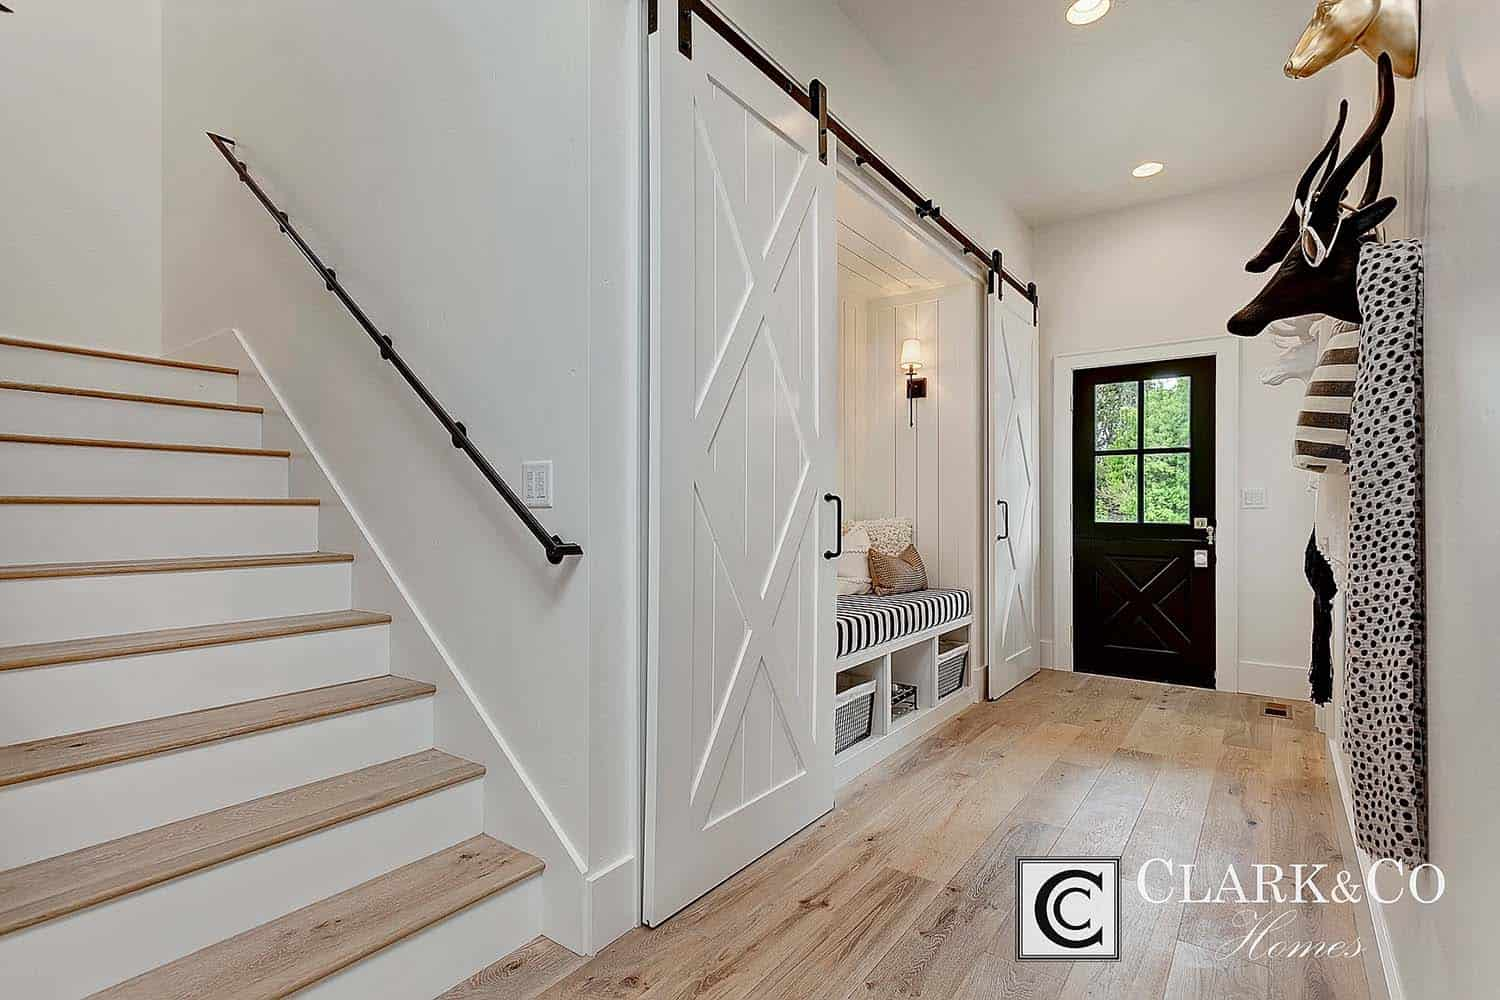 Modern Farmhouse Style-Clark and Co Homes-13-1 Kindesign